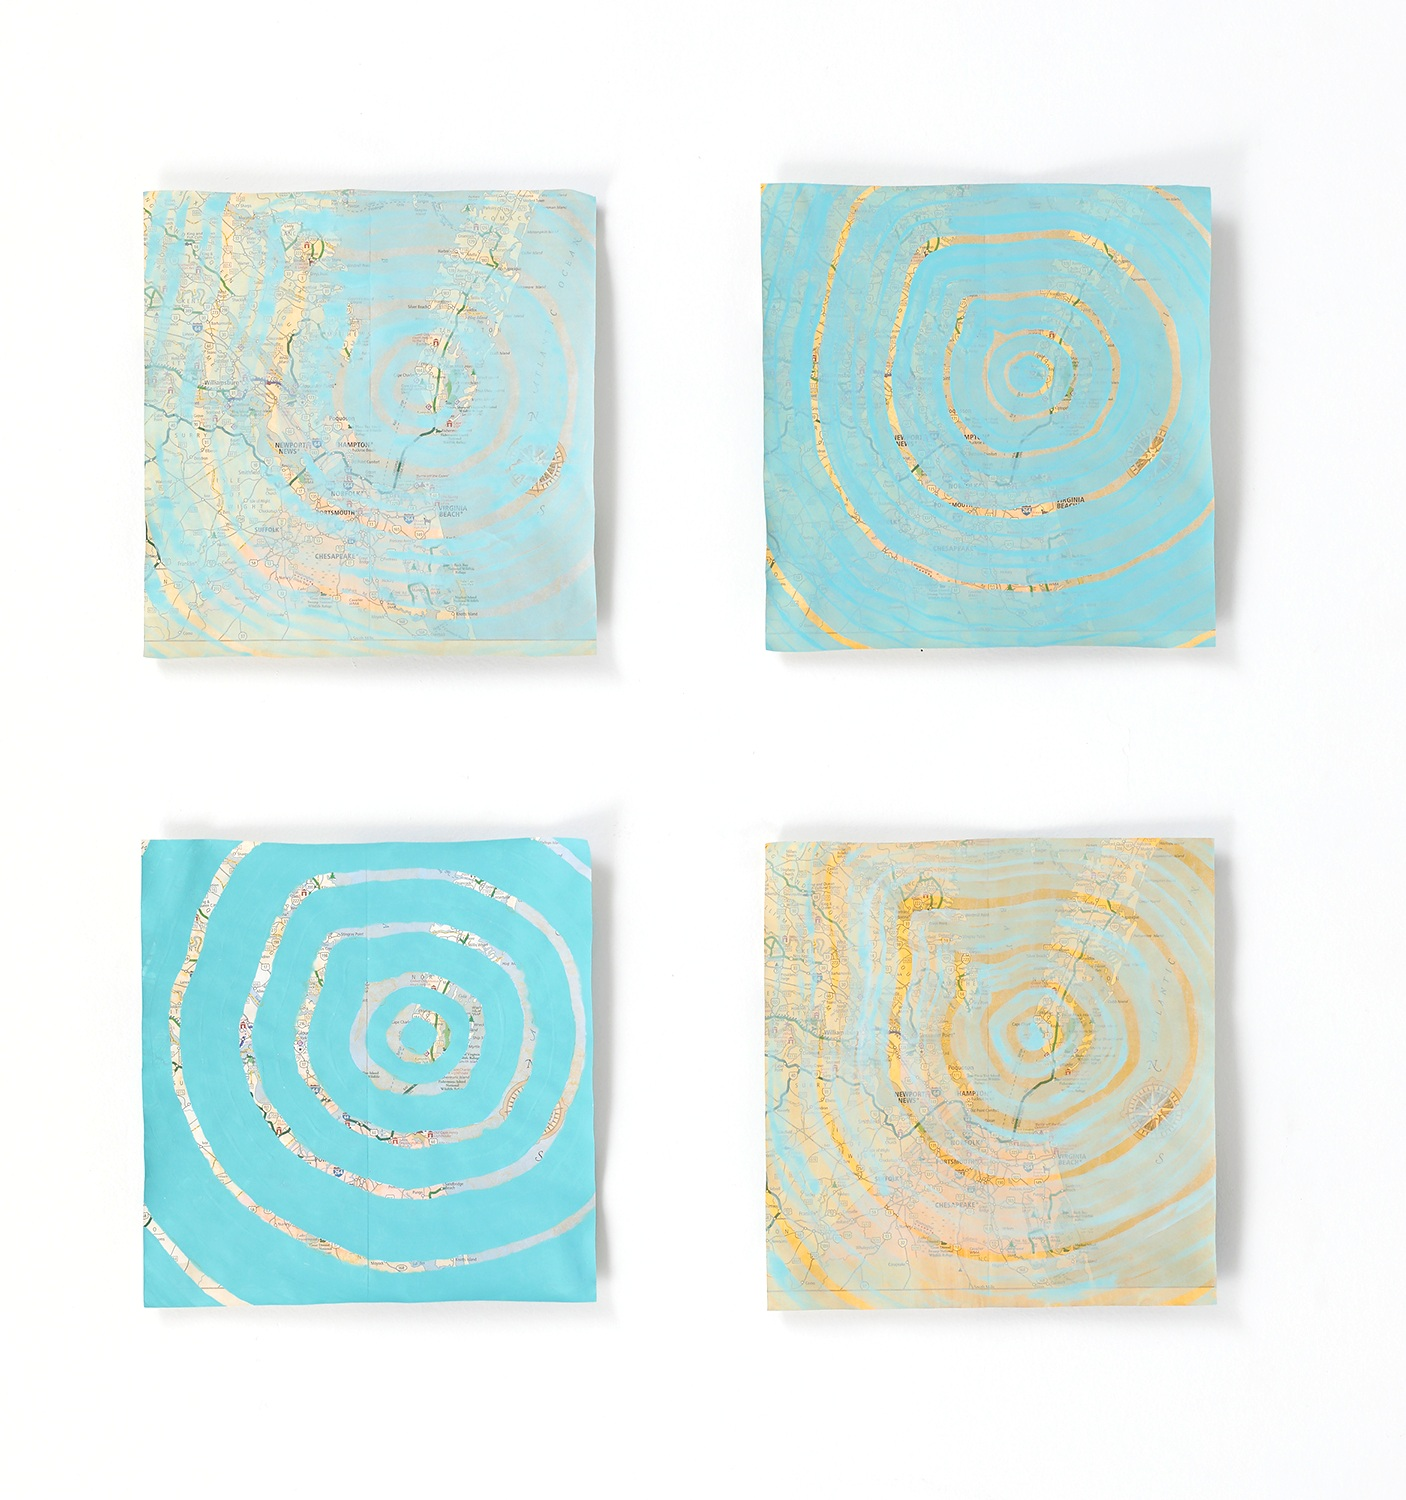 """Chesapeake Bay Impact Crater on VA Scenic Route Map , 2019, gauche and watercolor (water from Jamestown) on map, 8x8"""" each"""